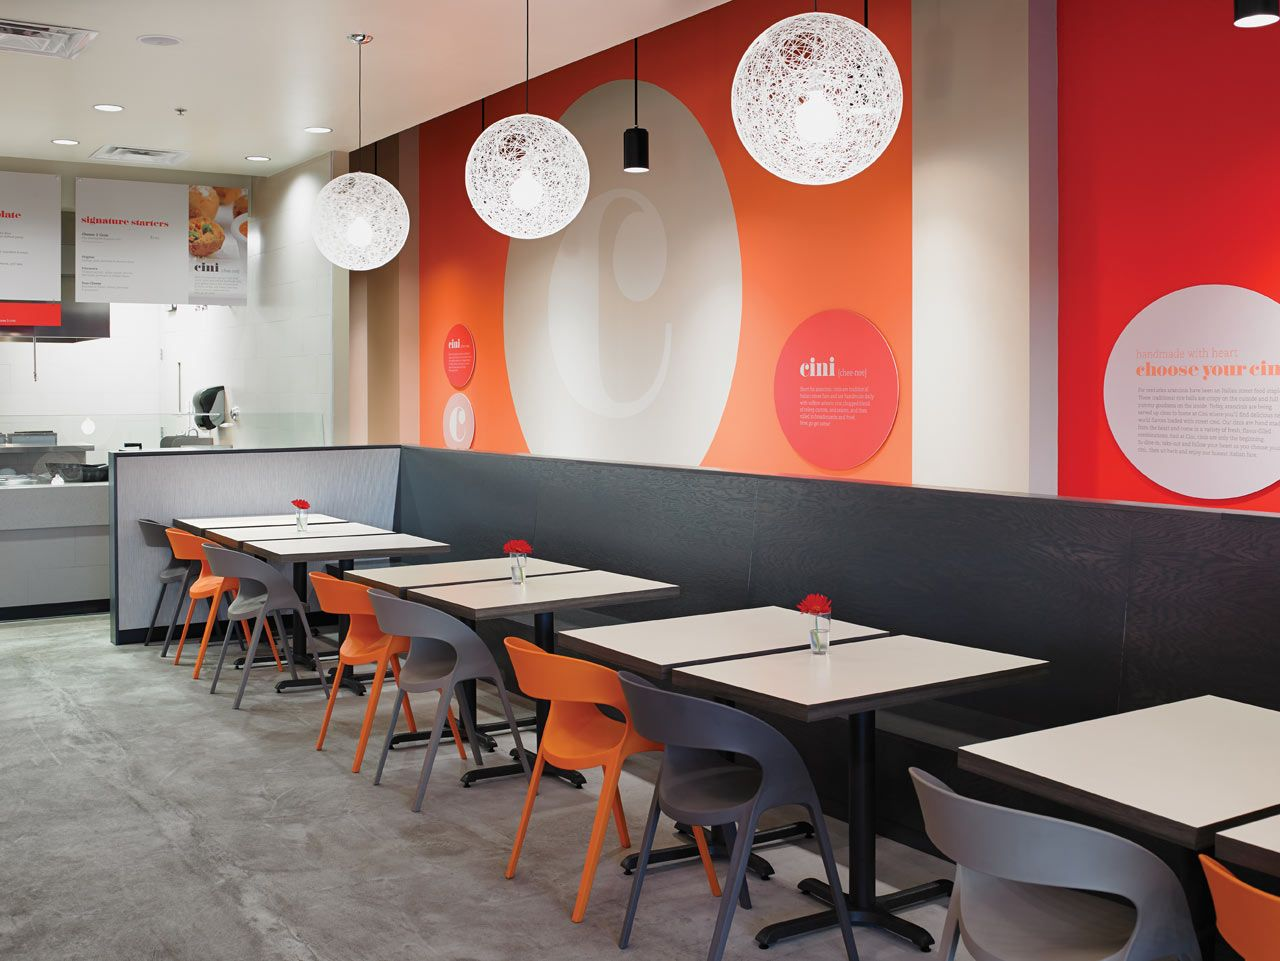 This modern cafe has a great mix of materials from